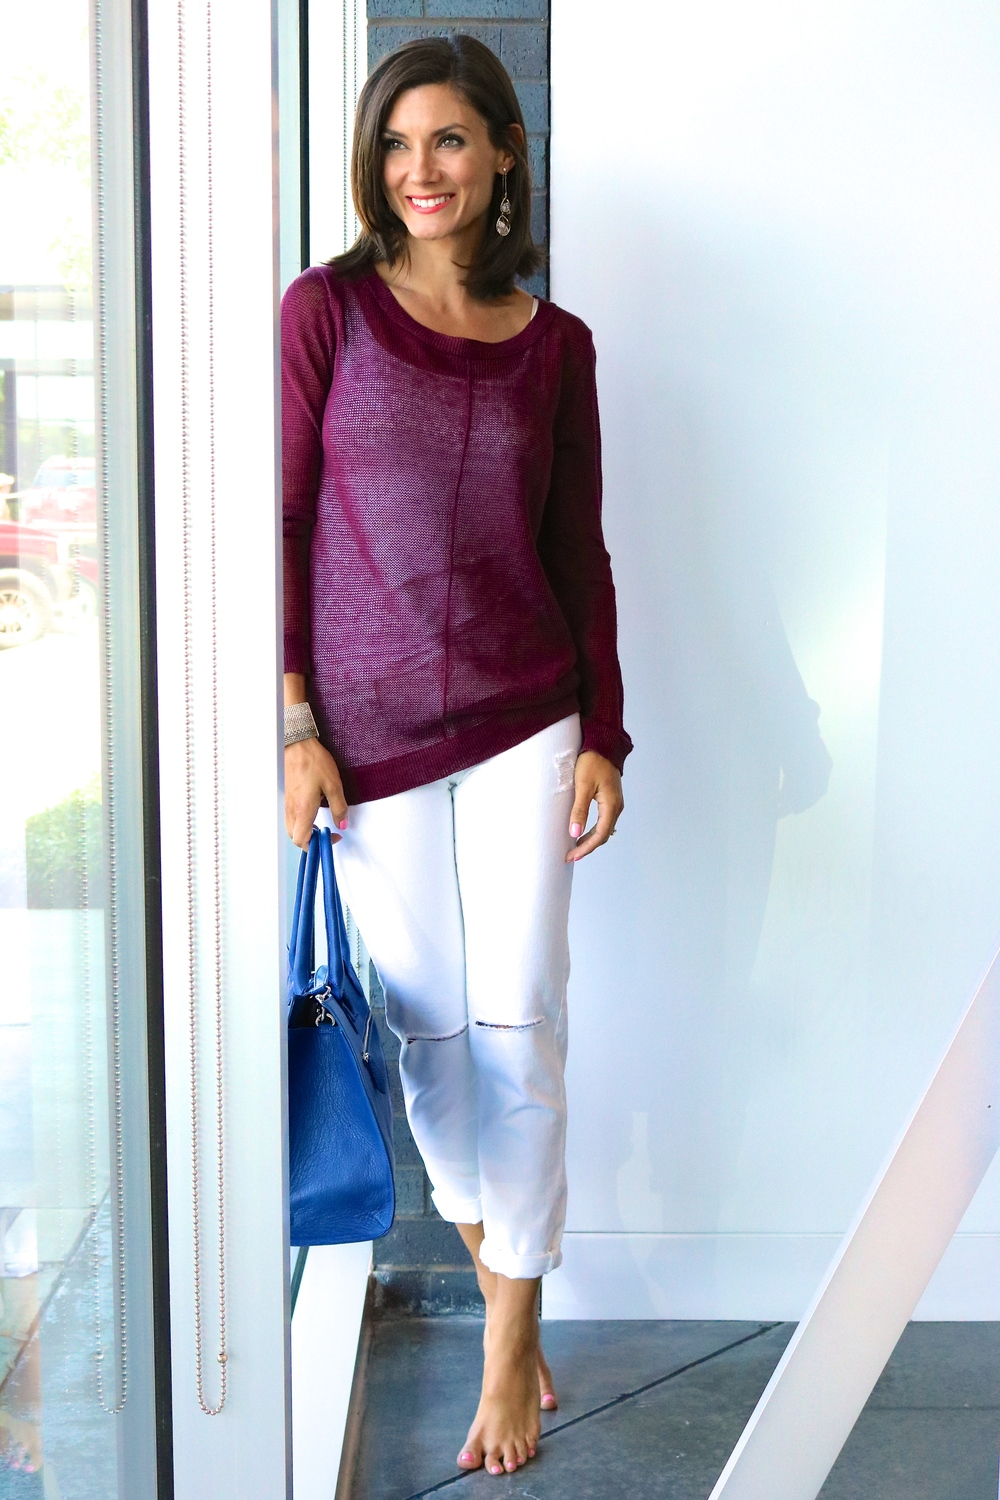 Linen Crewneck Sweater in Pinot on sale for $168.00